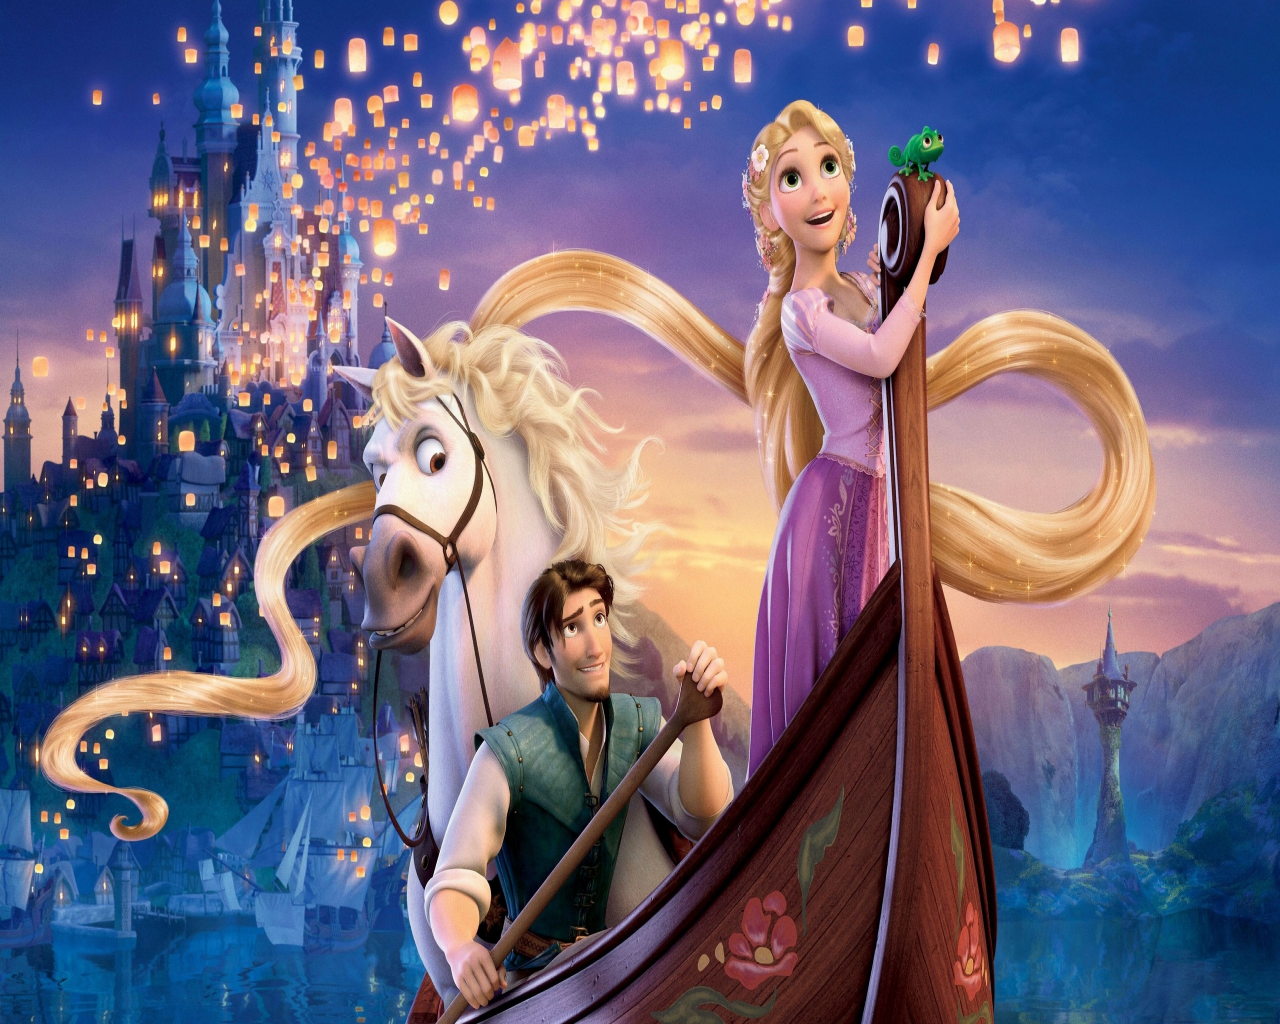 Rapunzel Full Movie In Hindi Download Hd The 140 Essential Animated Movies To Watch Now Rotten